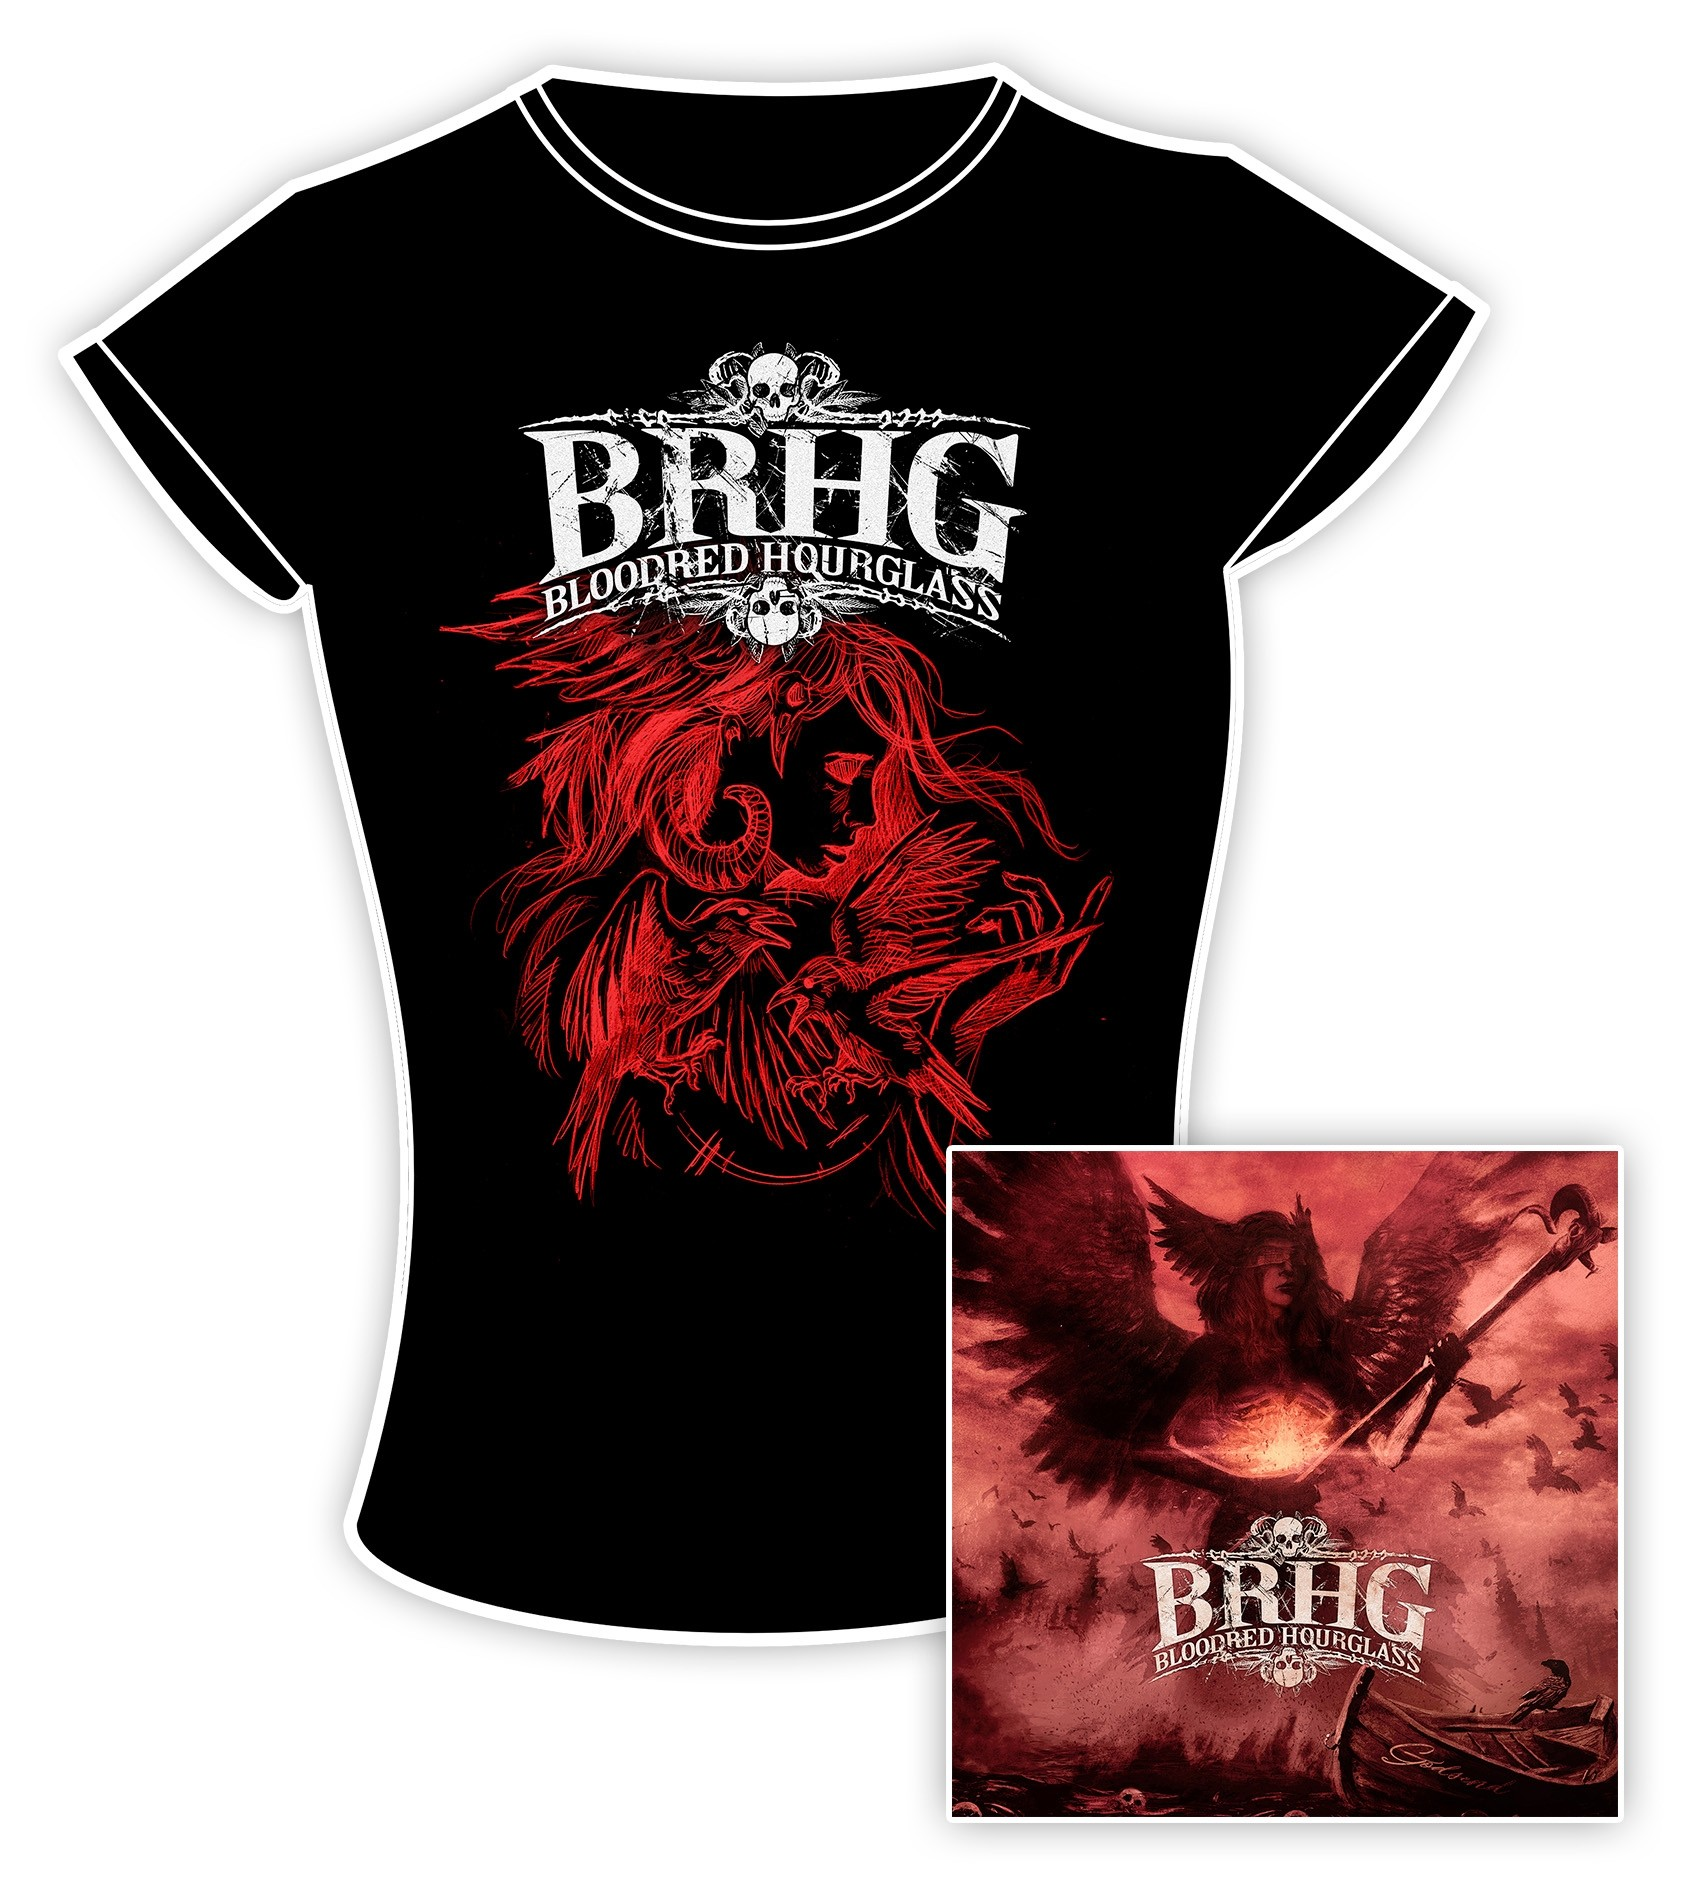 Bloodred Hourglass - Godsend - CD/Girlie Bundle